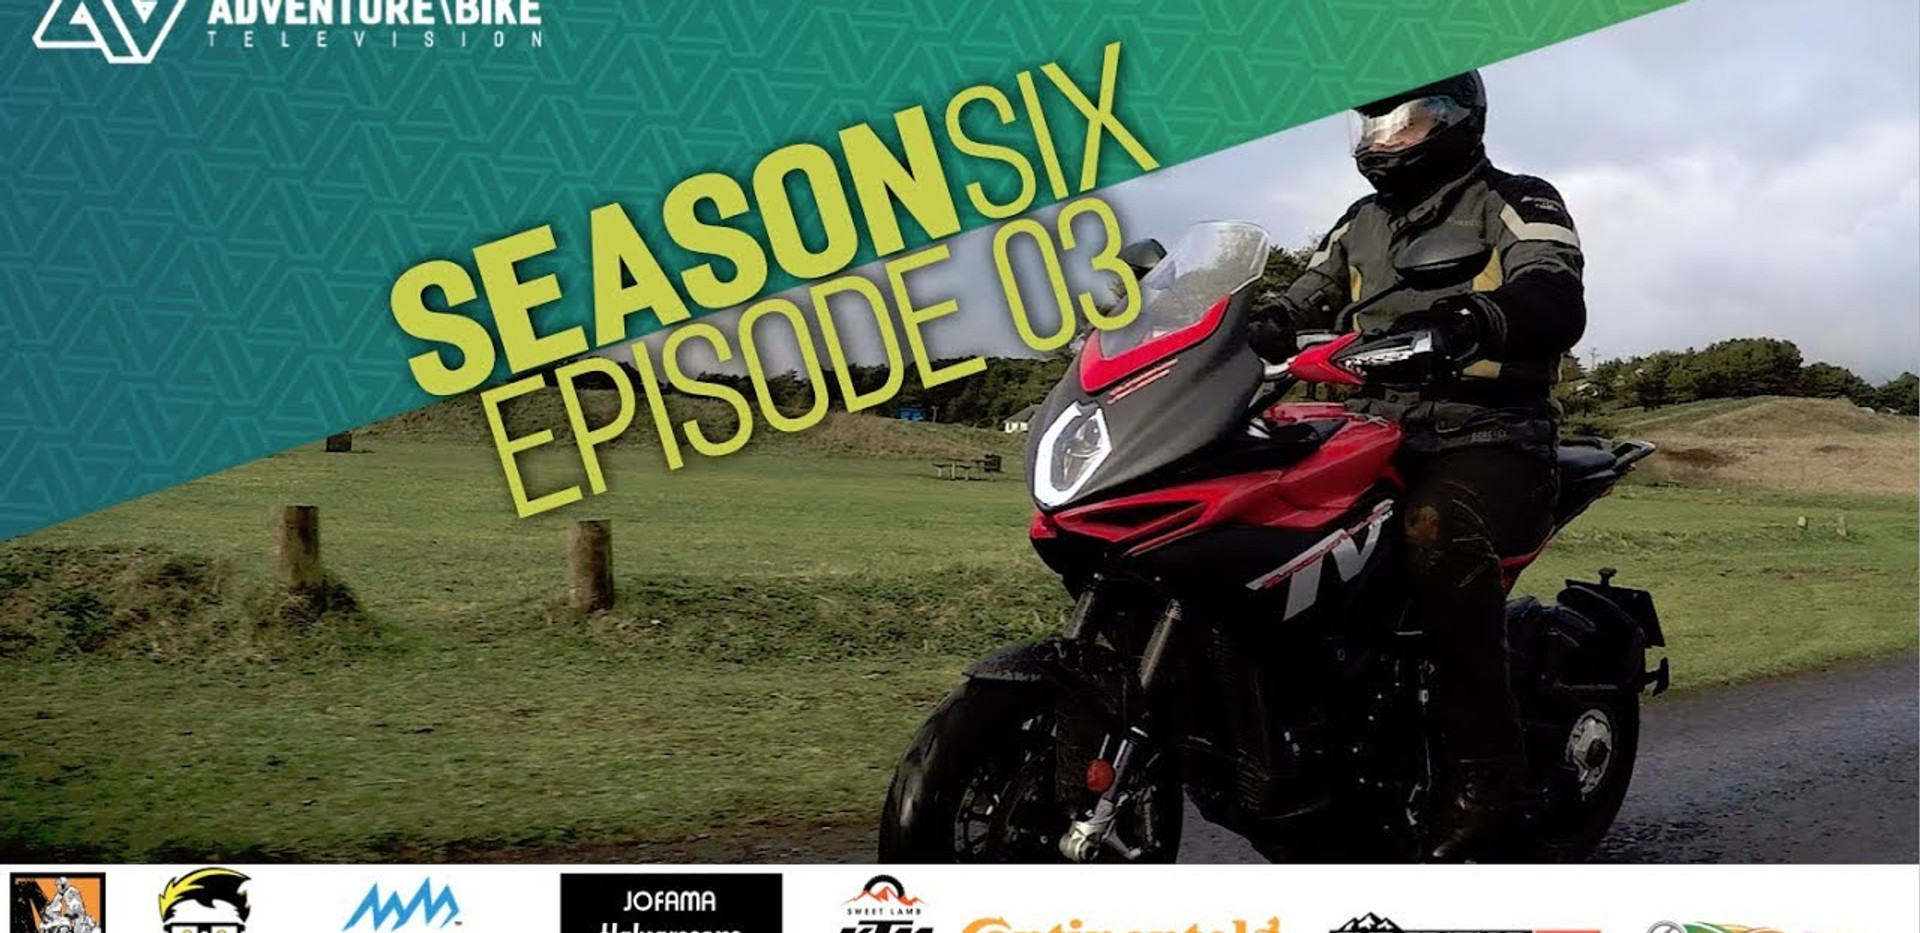 Adventure Bike TV, Seaons 6, Episode 3